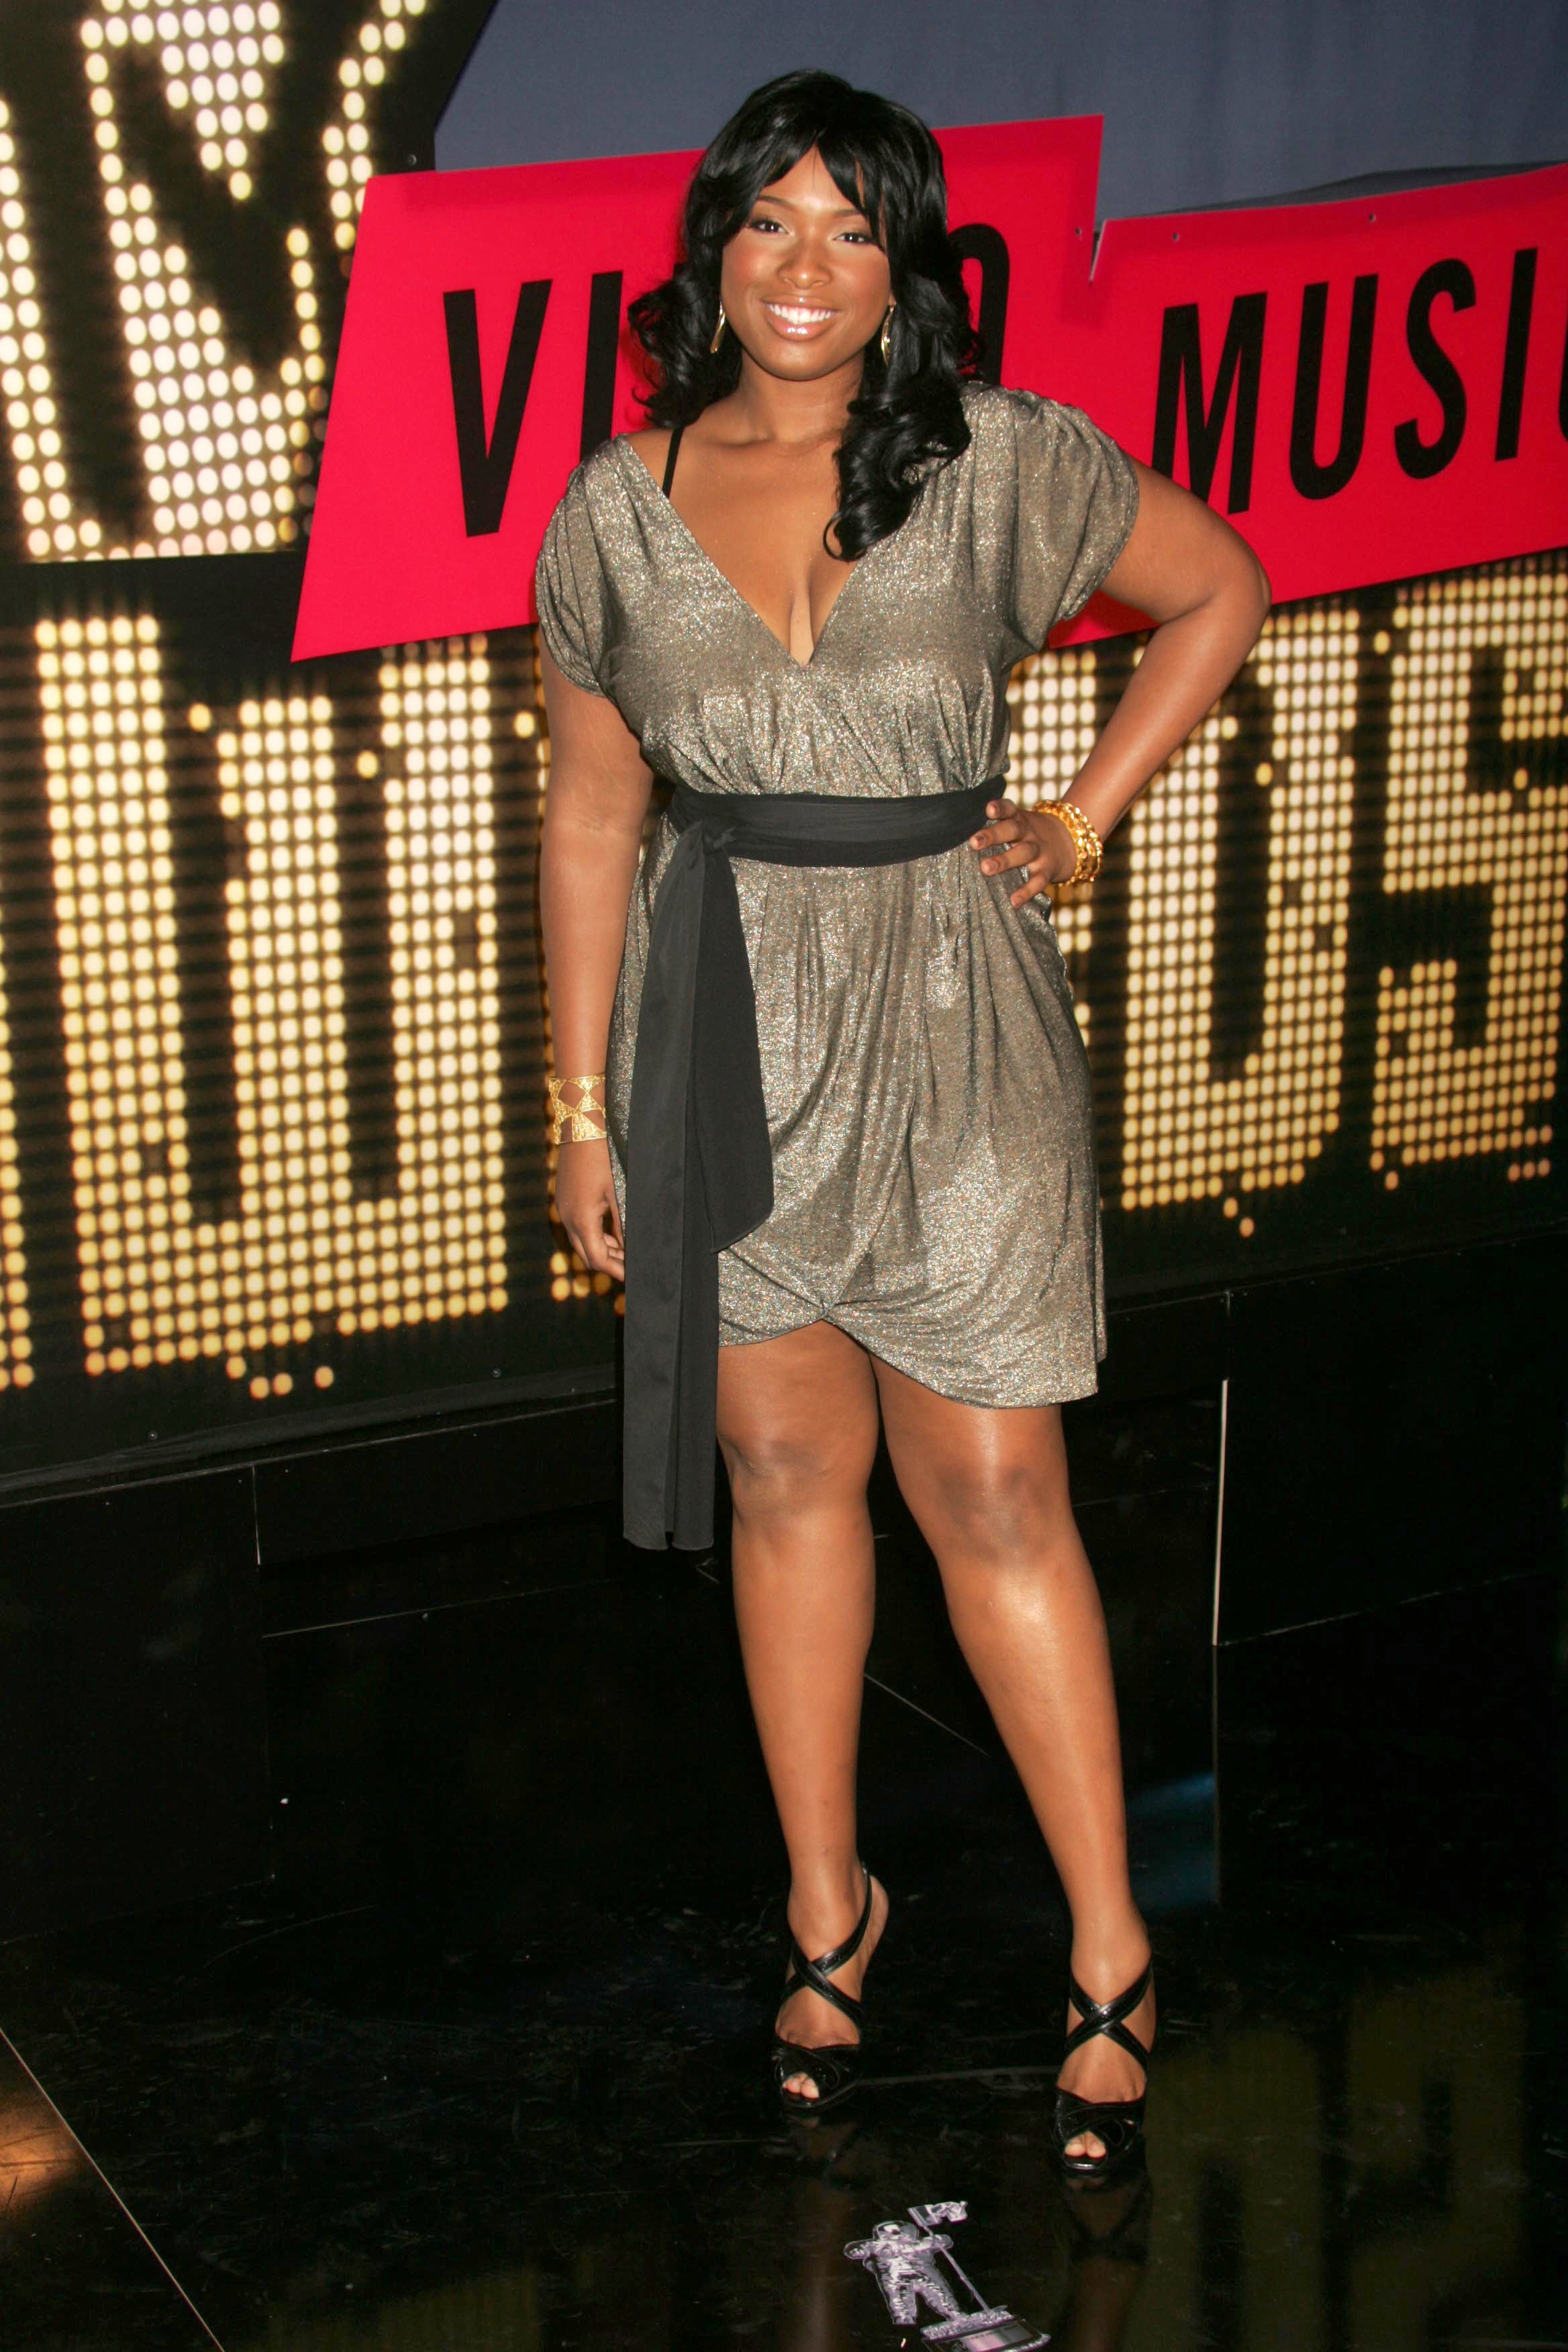 Jennifer Hudson attends the 2007 MTV Video Music Awards at the Palms Hotel and Casino in Las Vegas on Sept. 9, 2007.